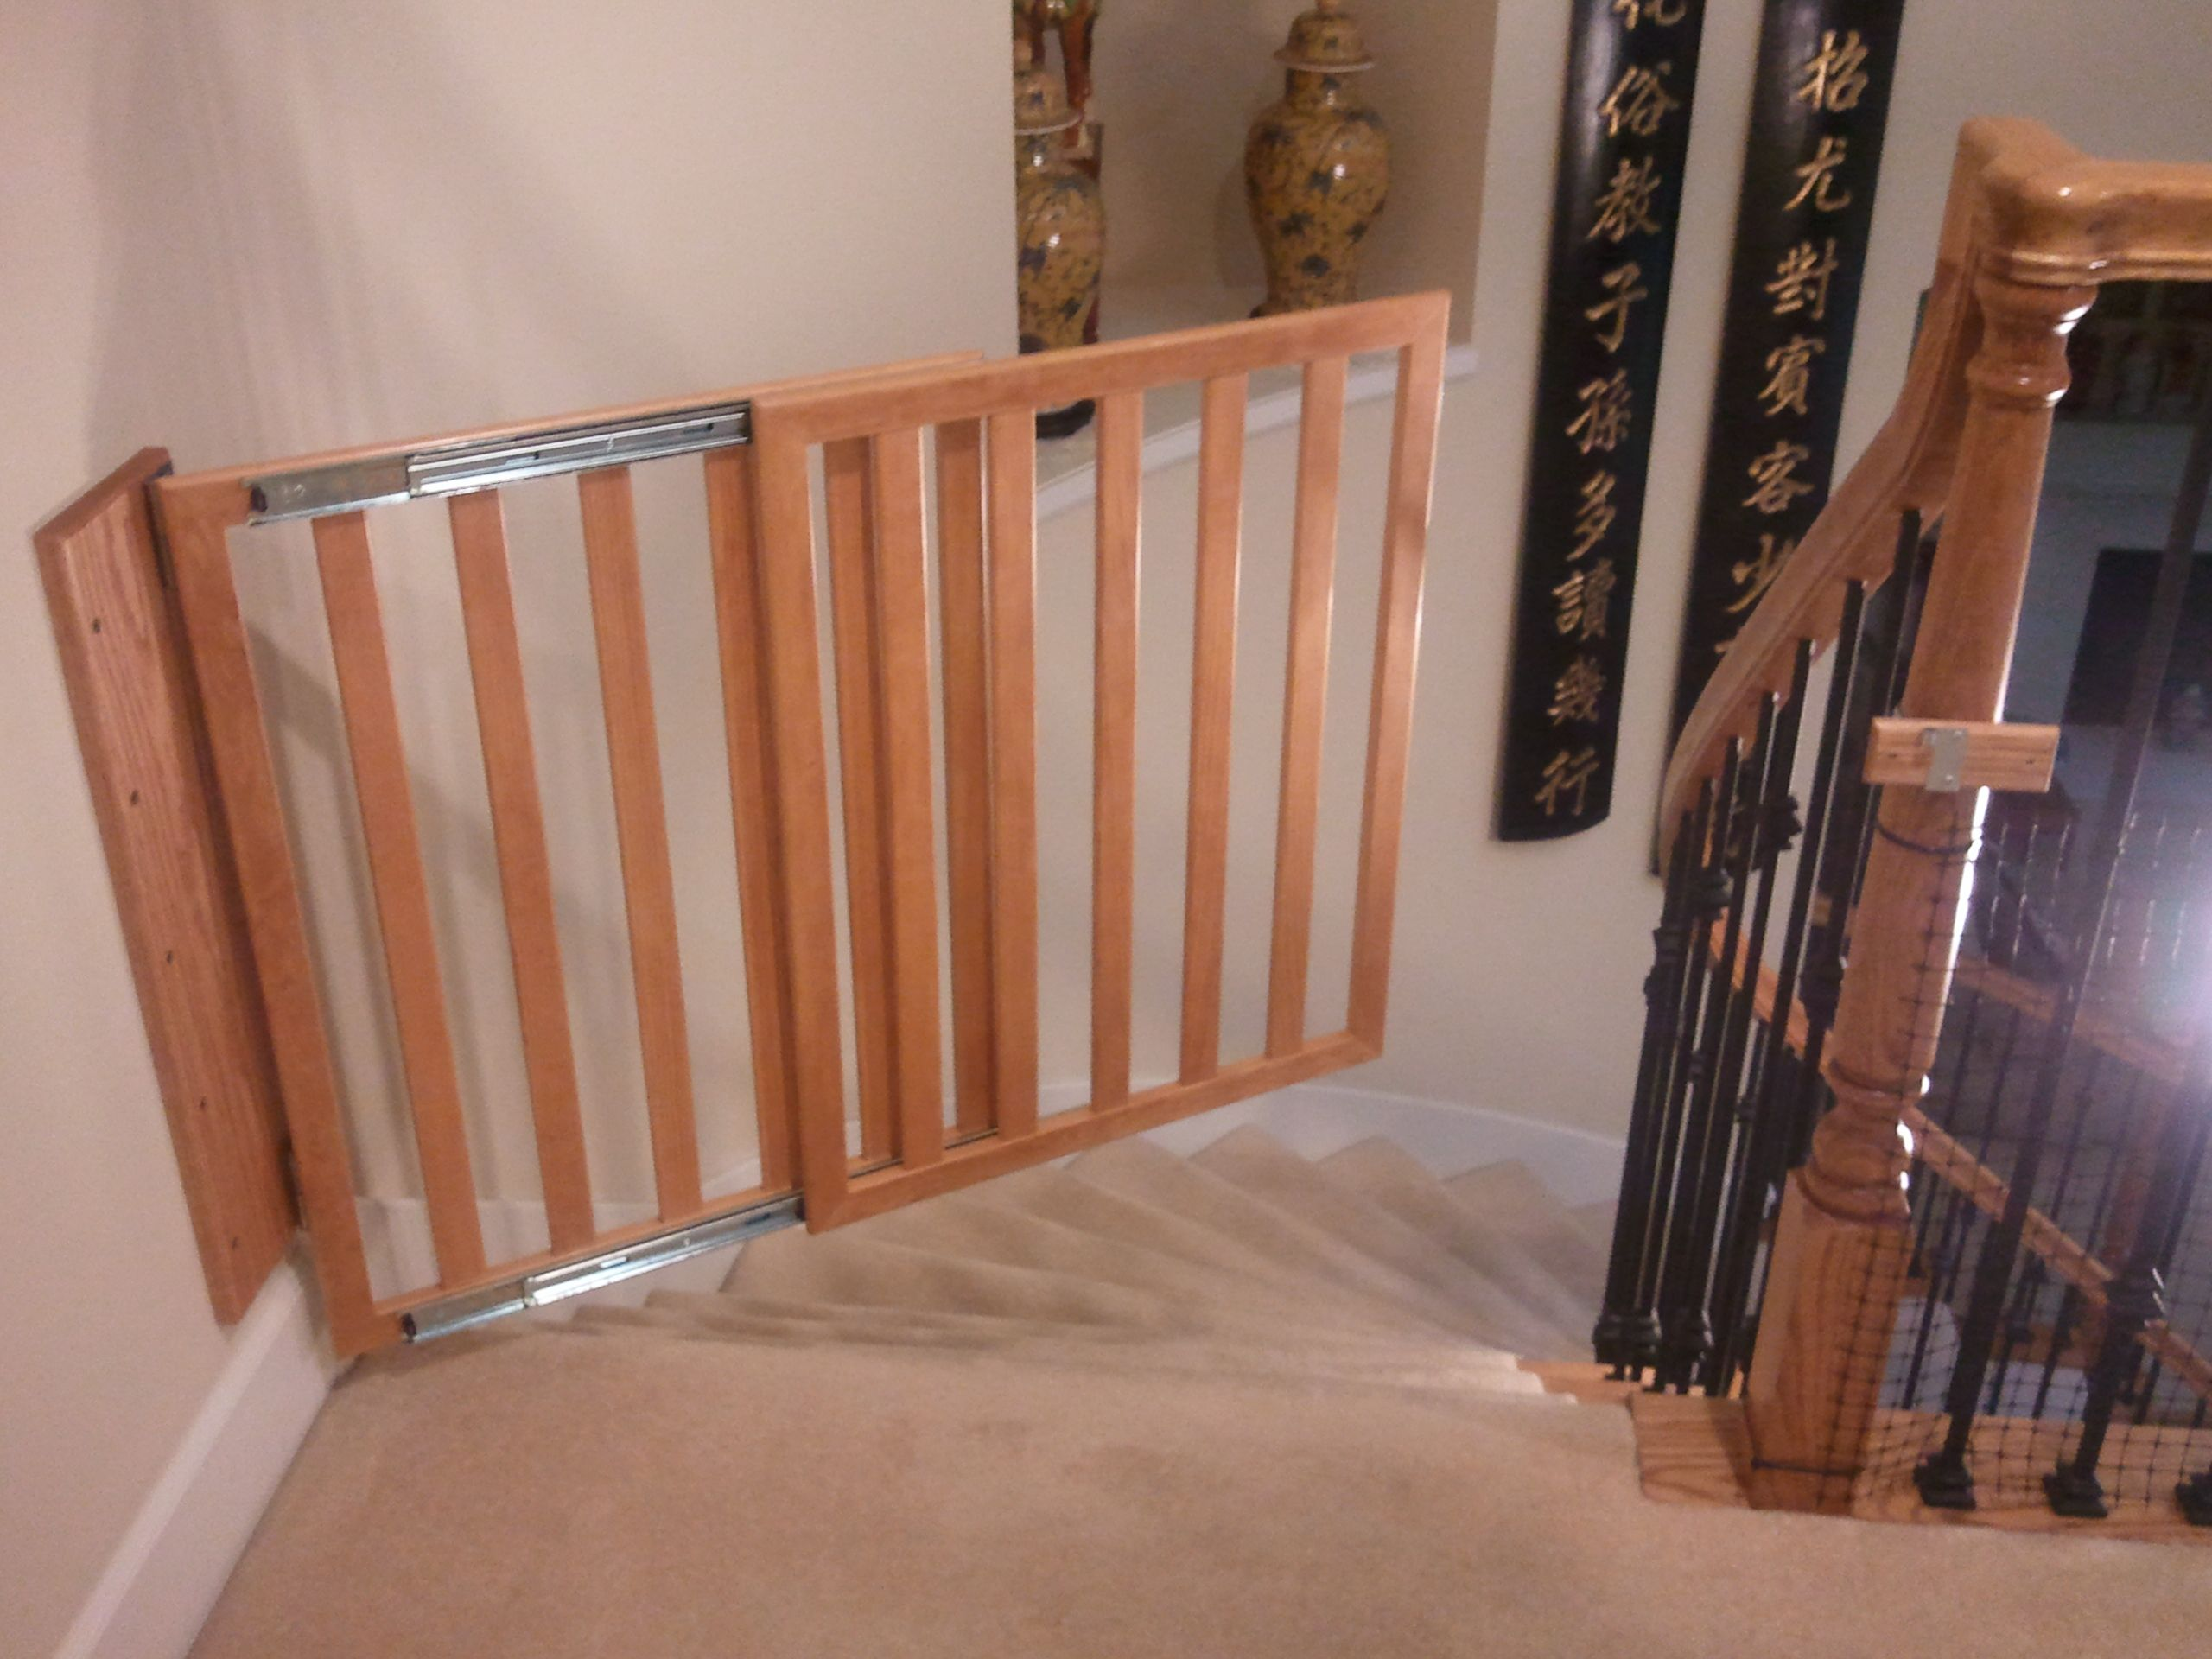 Download Free Baby Gate Plans Wooden baby gates, Baby